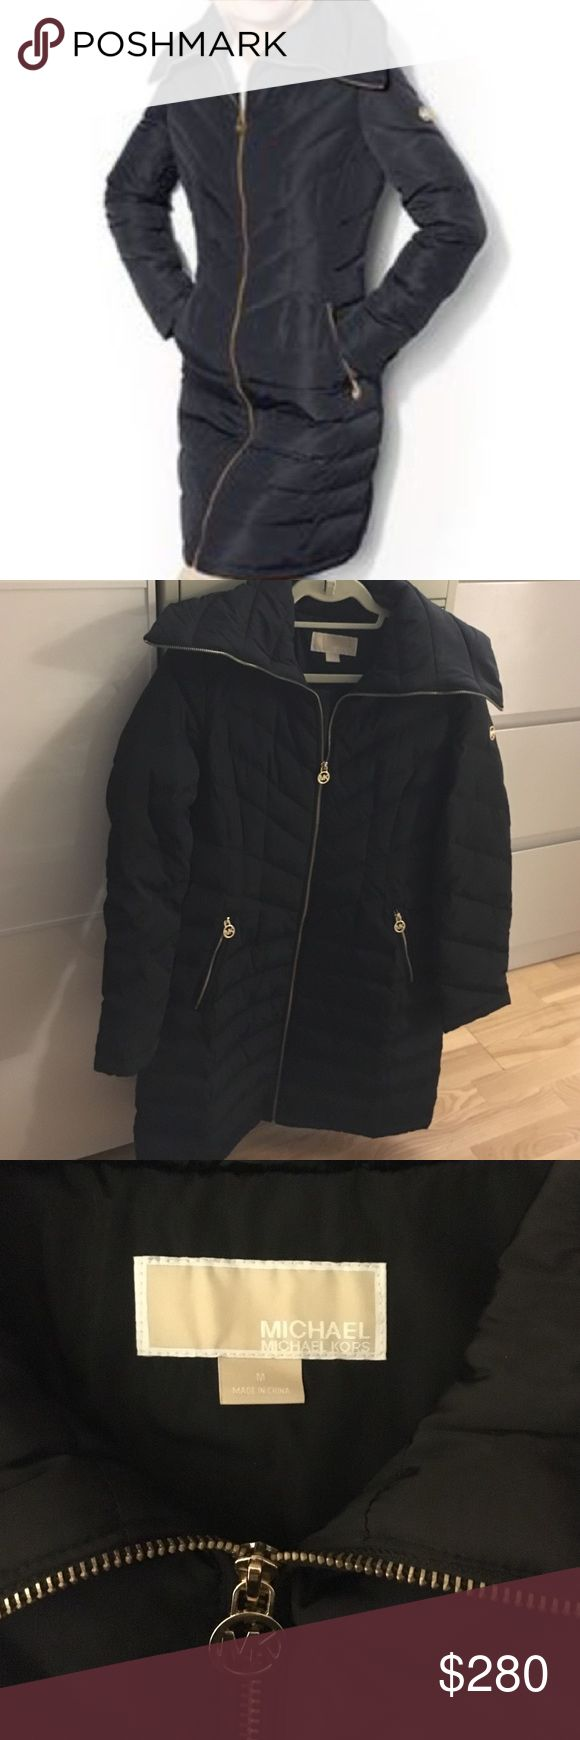 Michael Kors puffer coat NWOT Never worn! Was a gift but doesn't fit, lost the tags and no receipt 😕 need to sell to buy a new one ☺️ MICHAEL Michael Kors Jackets & Coats Puffers